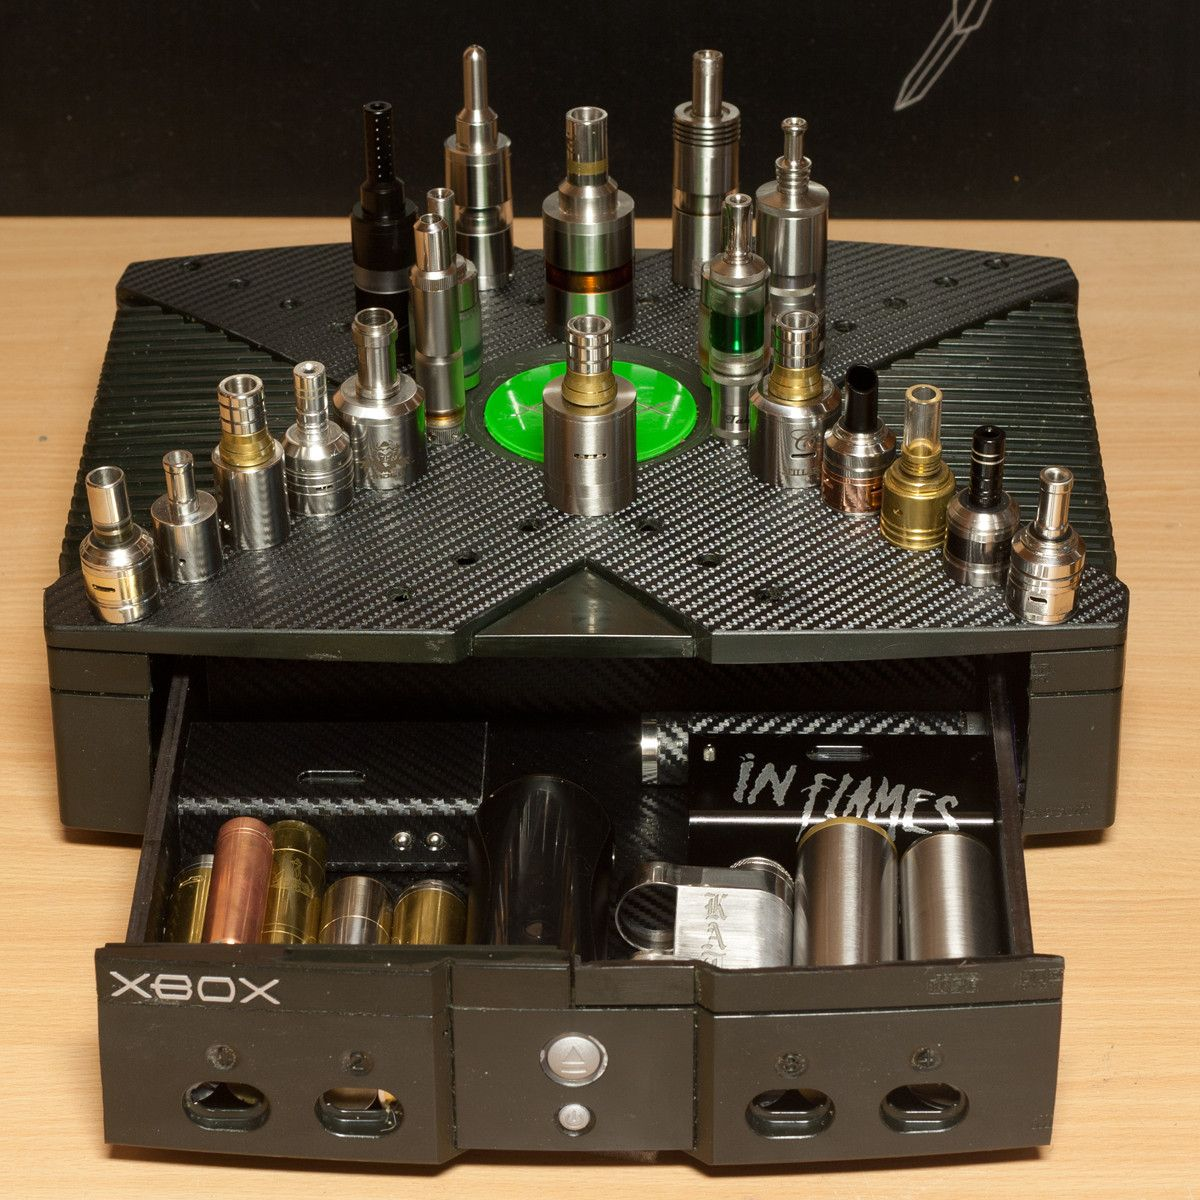 Vape Stand Designs : Old xbox made into a badass vape stand looks awesome